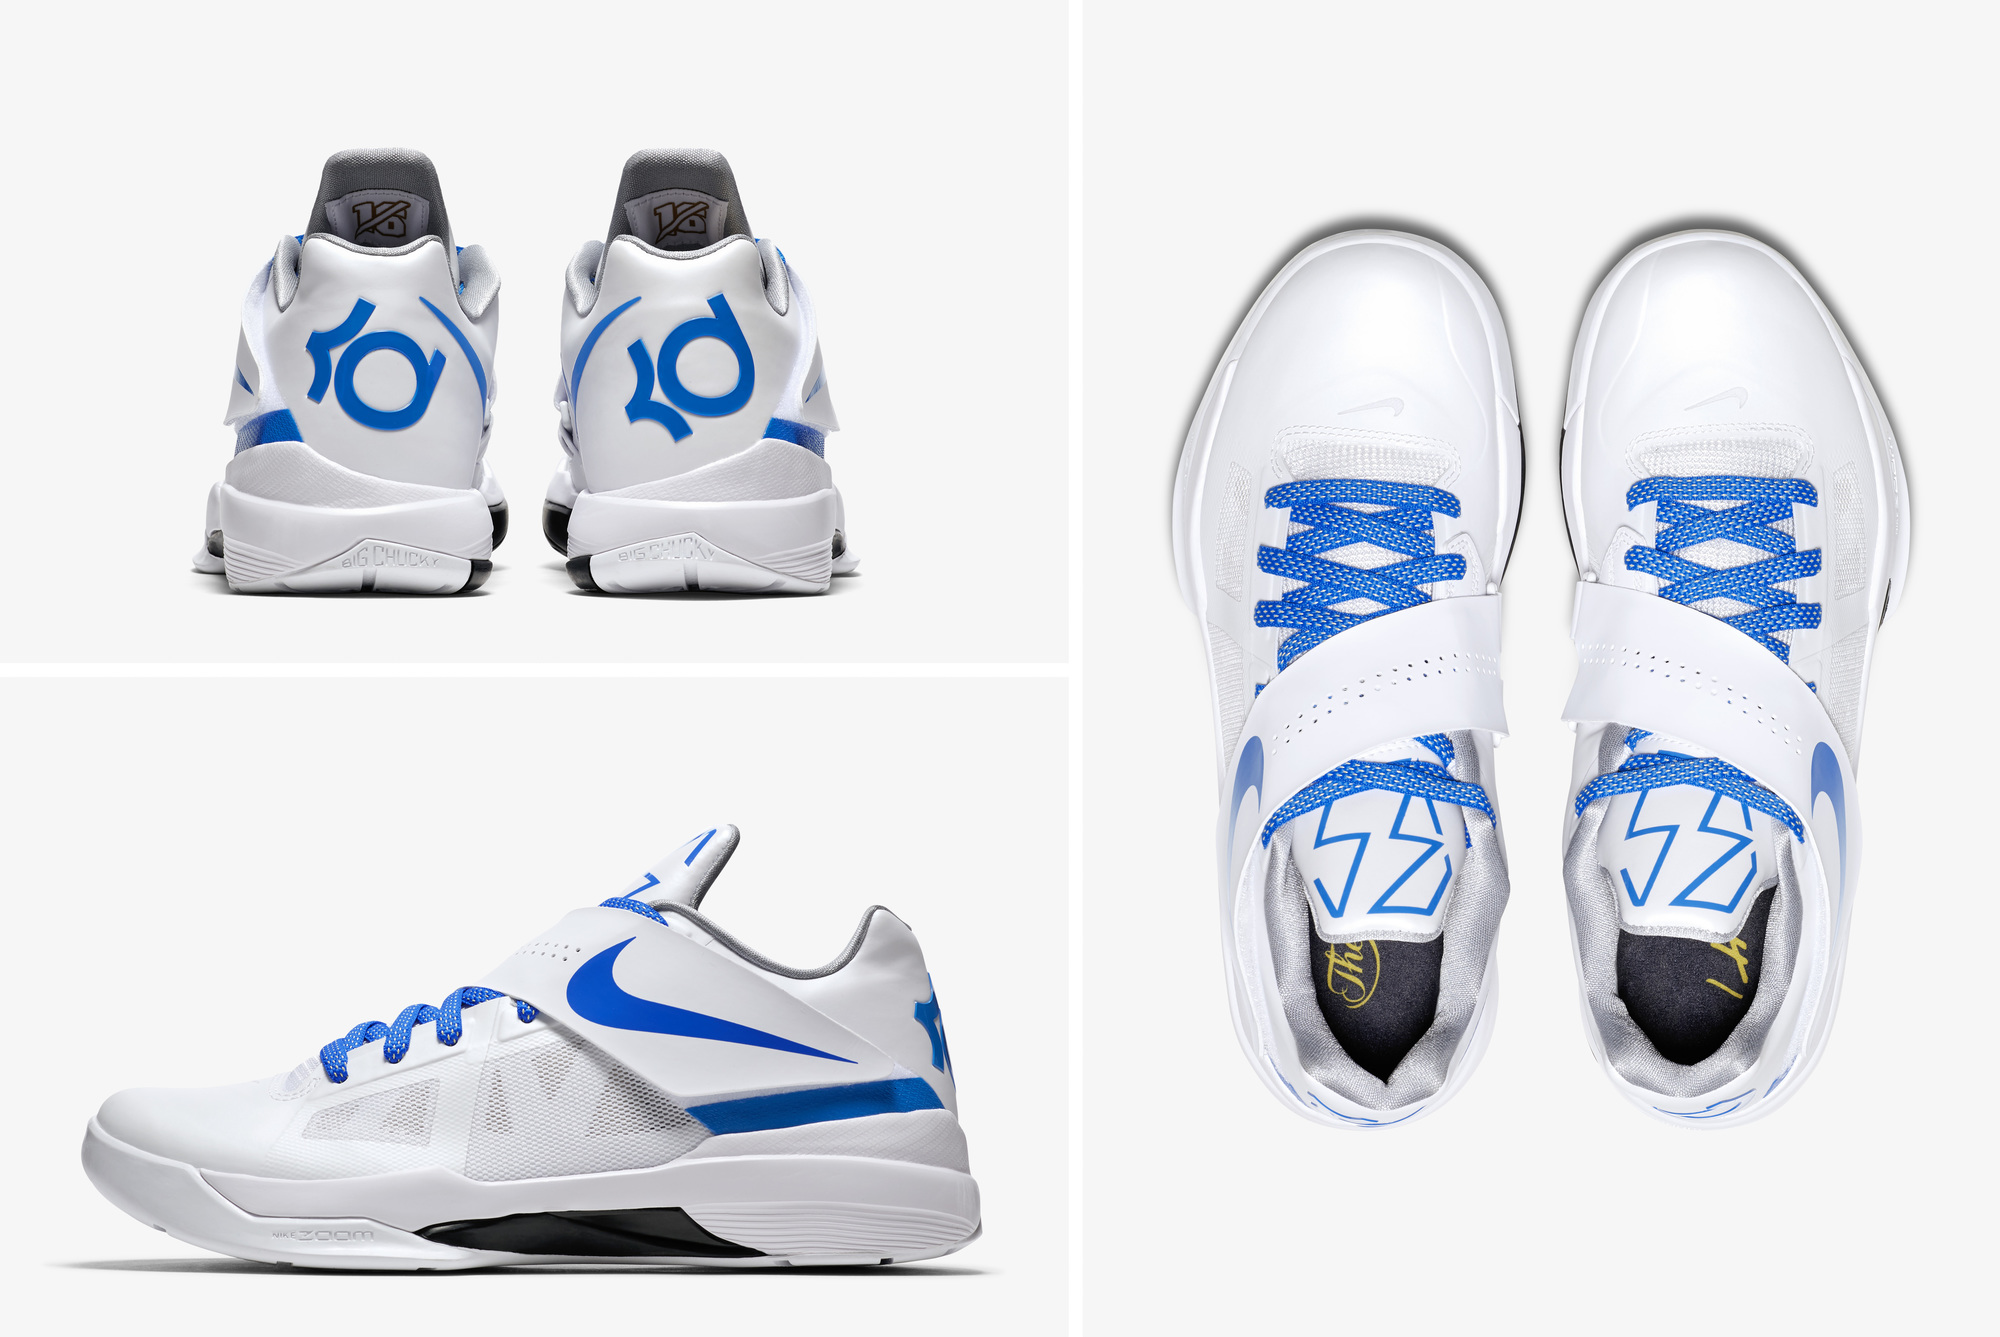 9d7c787a748c Nike Zoom KD 4 Battle Tested kevin durant - WearTesters